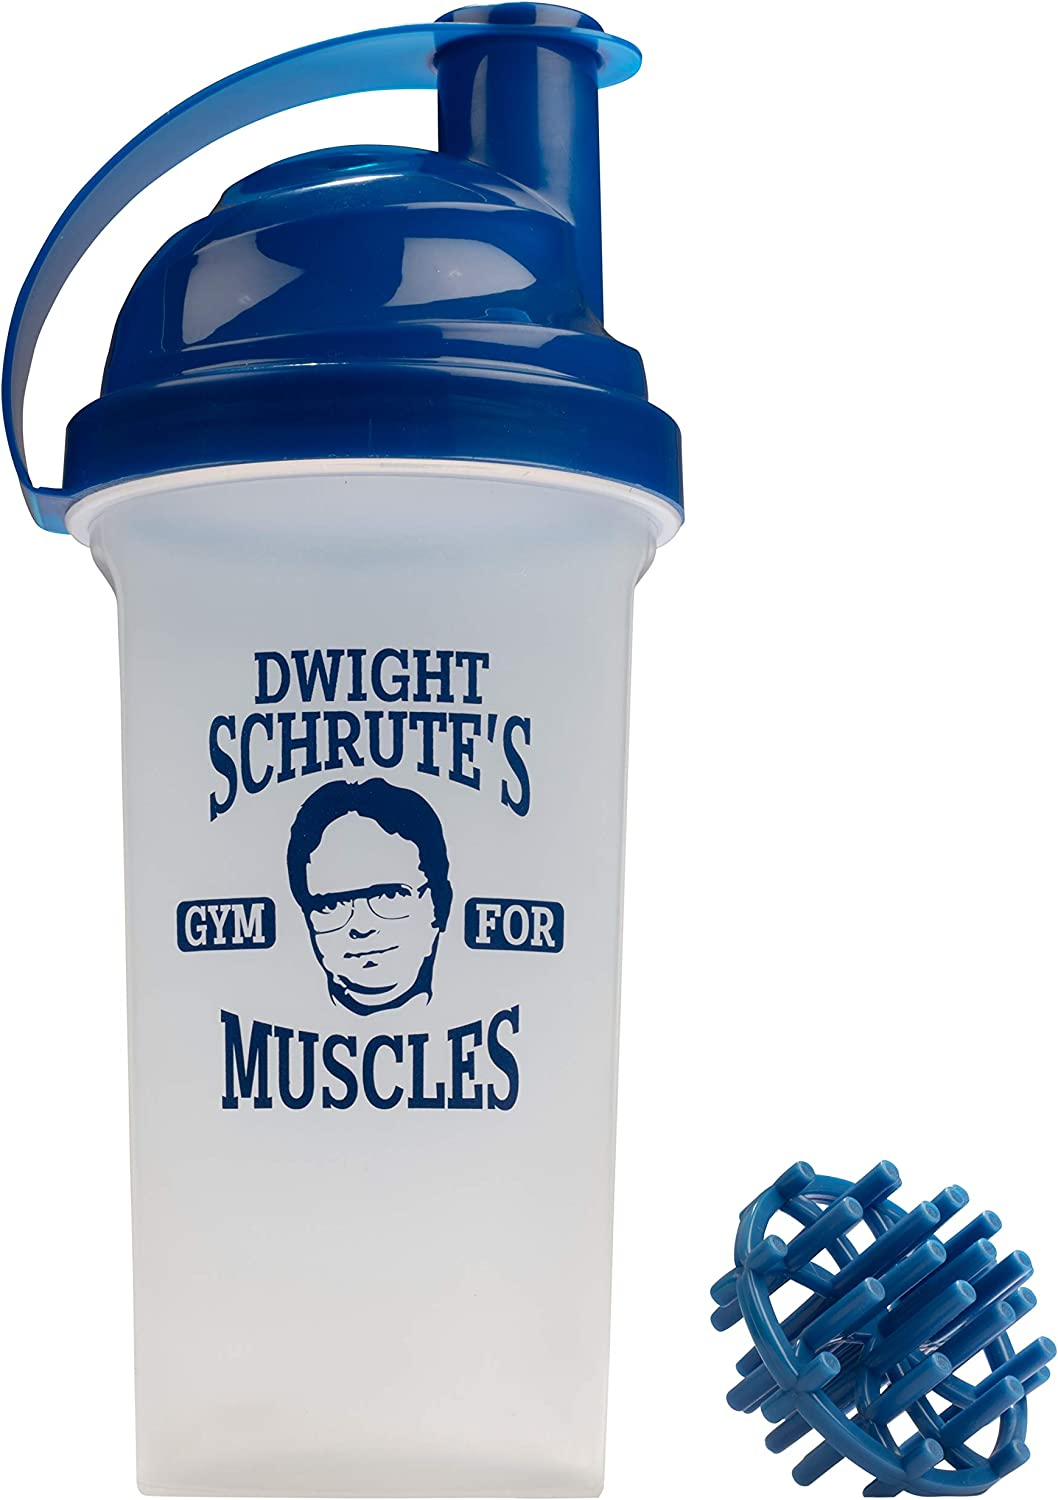 The Office Protein Shaker Bottle - Dwight Schrute's Gym for Muscles - 25 oz Shaker Bottle with Wisk Ball - Funny Design for Office Fans - Official Merchandise